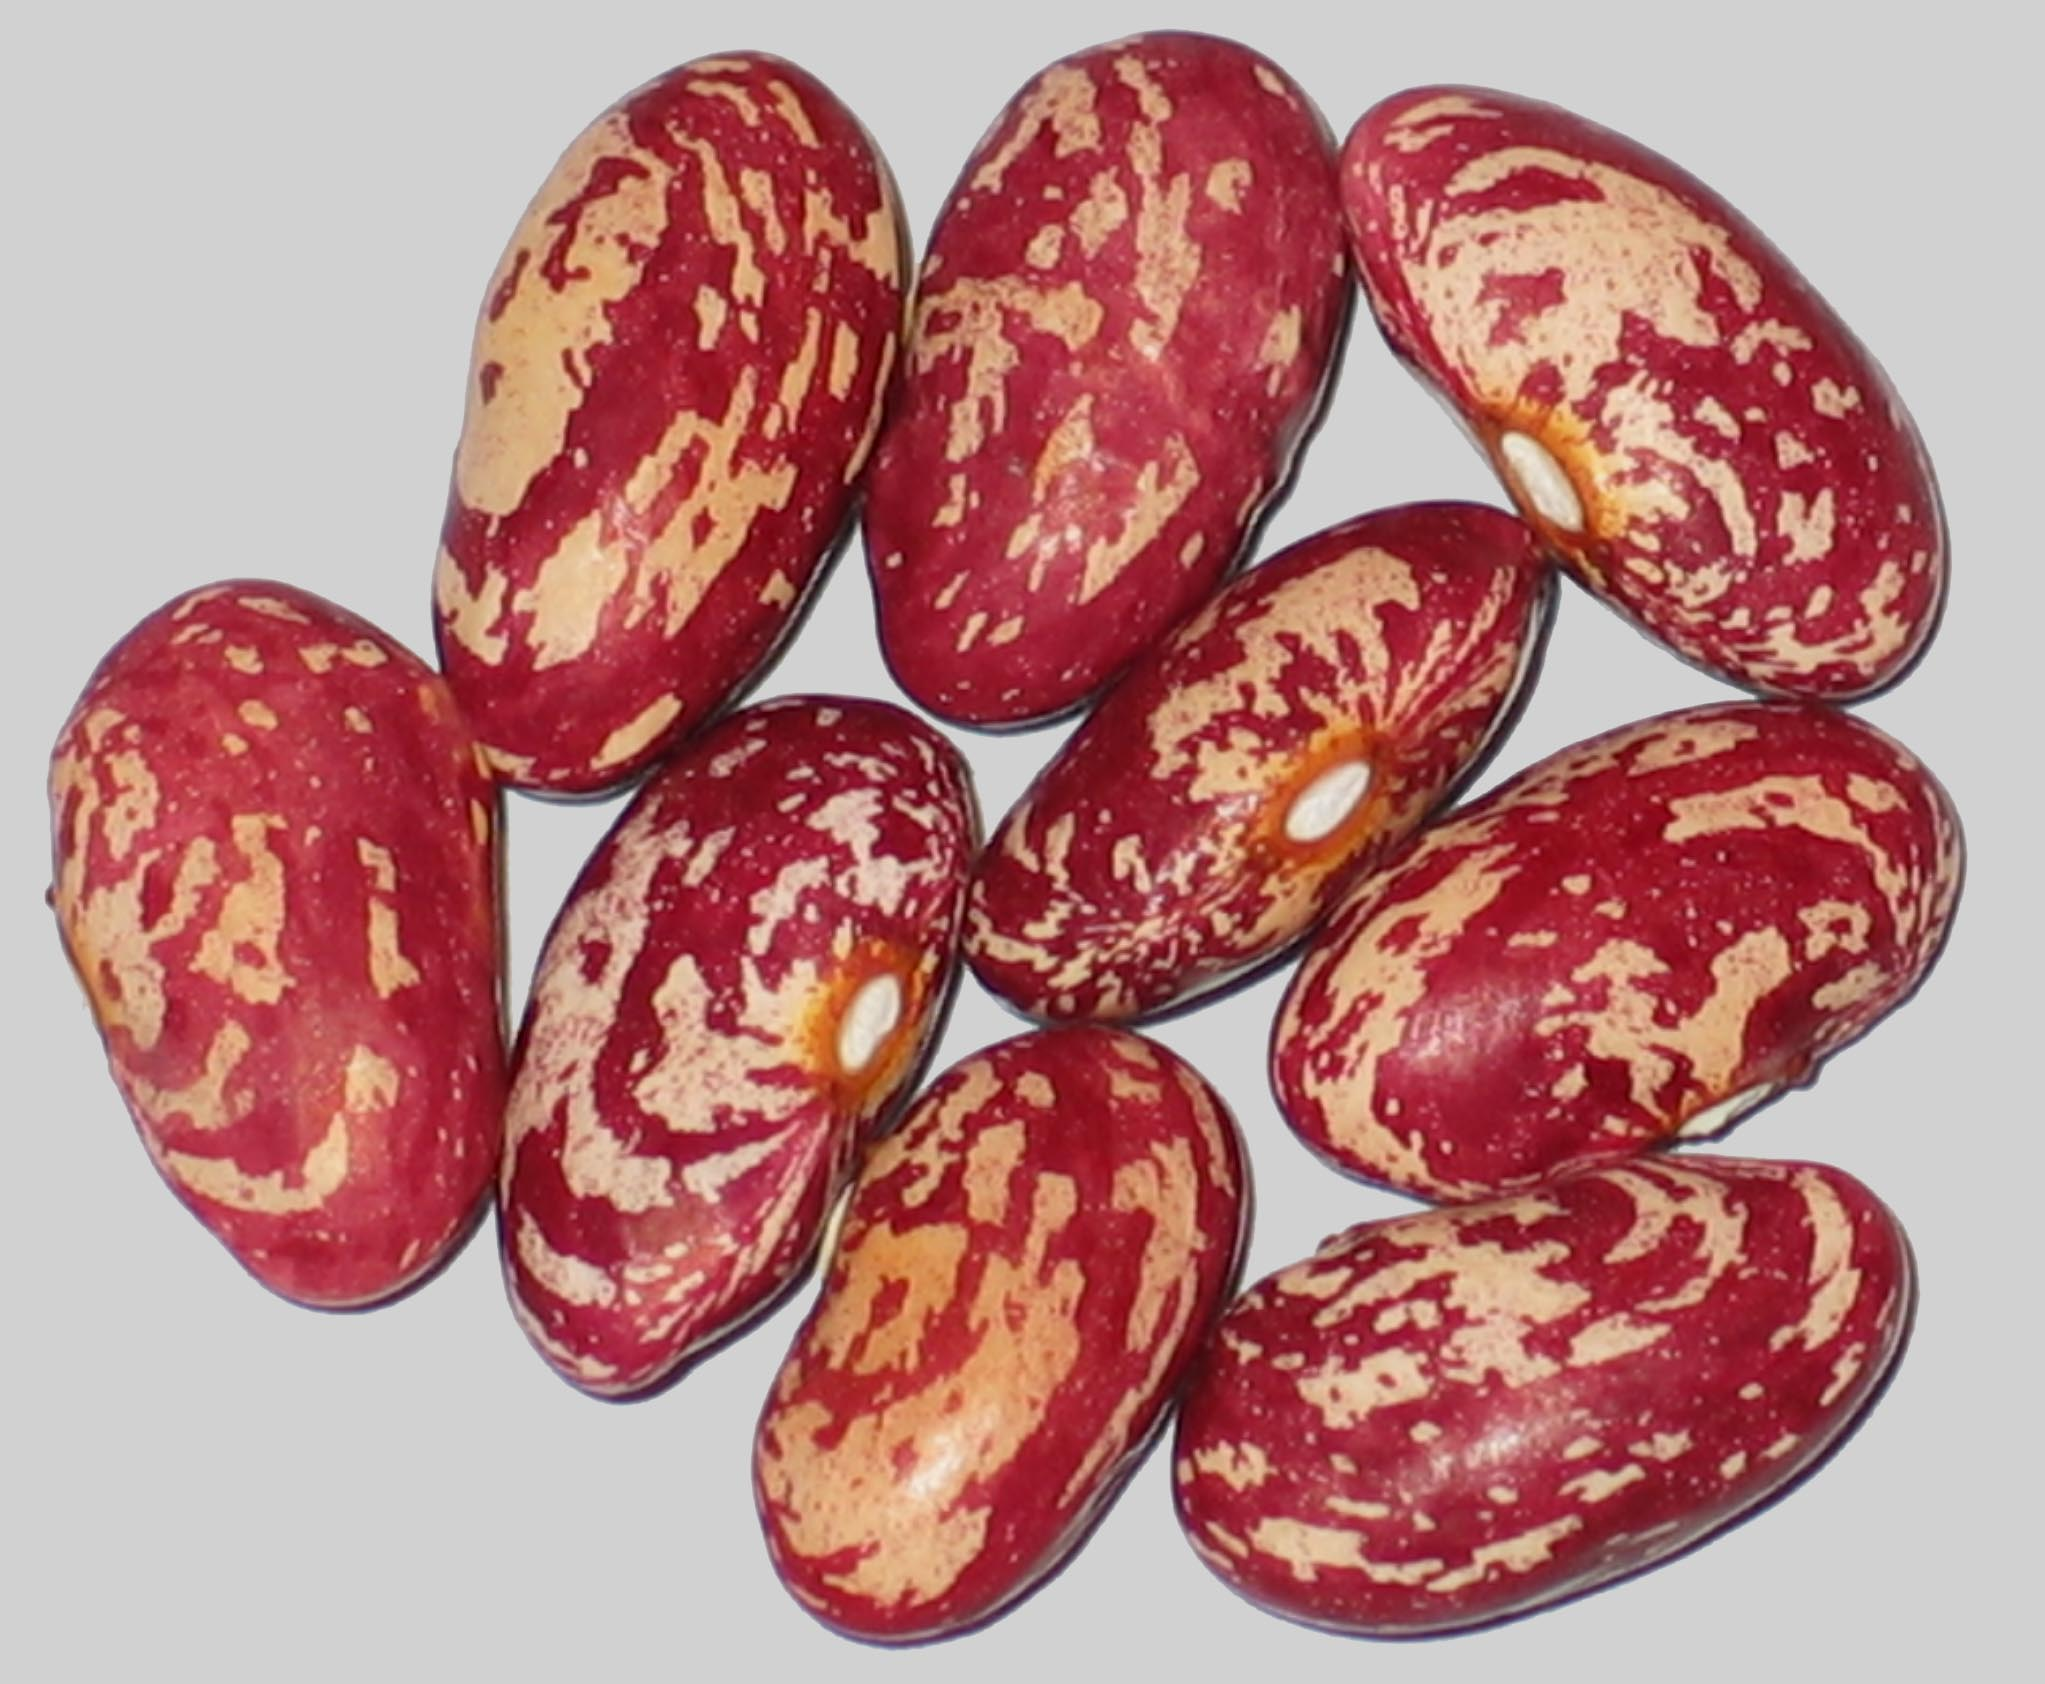 image of Grandma's Shell beans